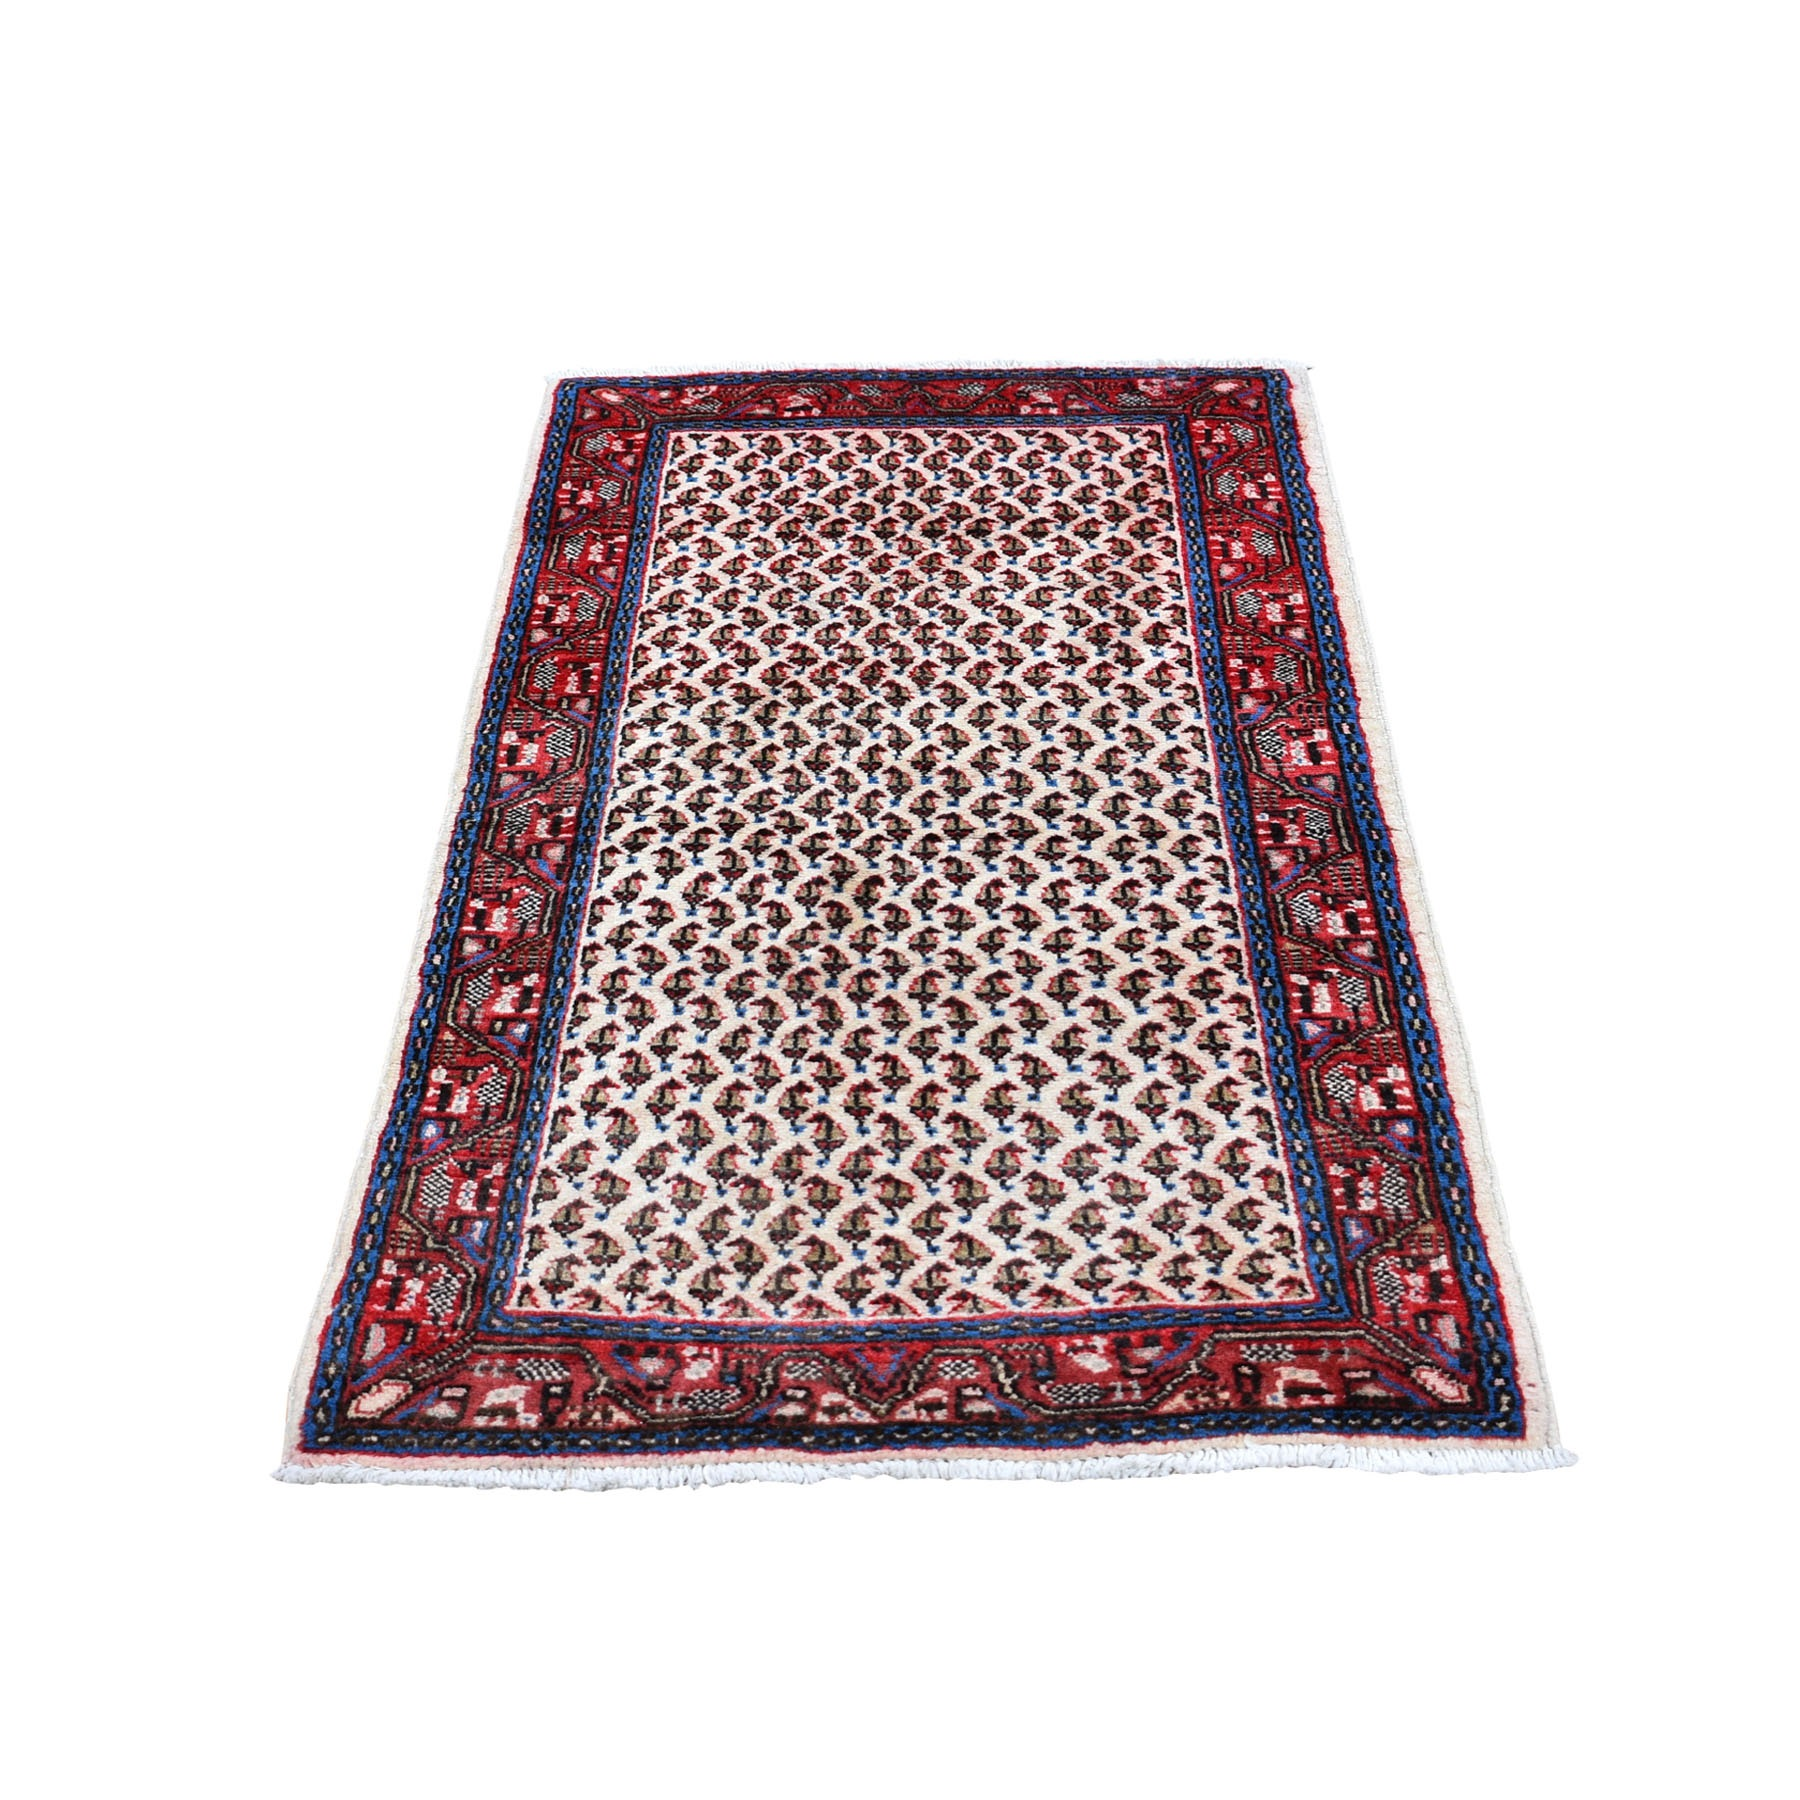 "2'1""x4'2"" Ivory Vinatge Pure Wool Sarouk Mir With Boteh Design Hand Knotted Oriental Rug"